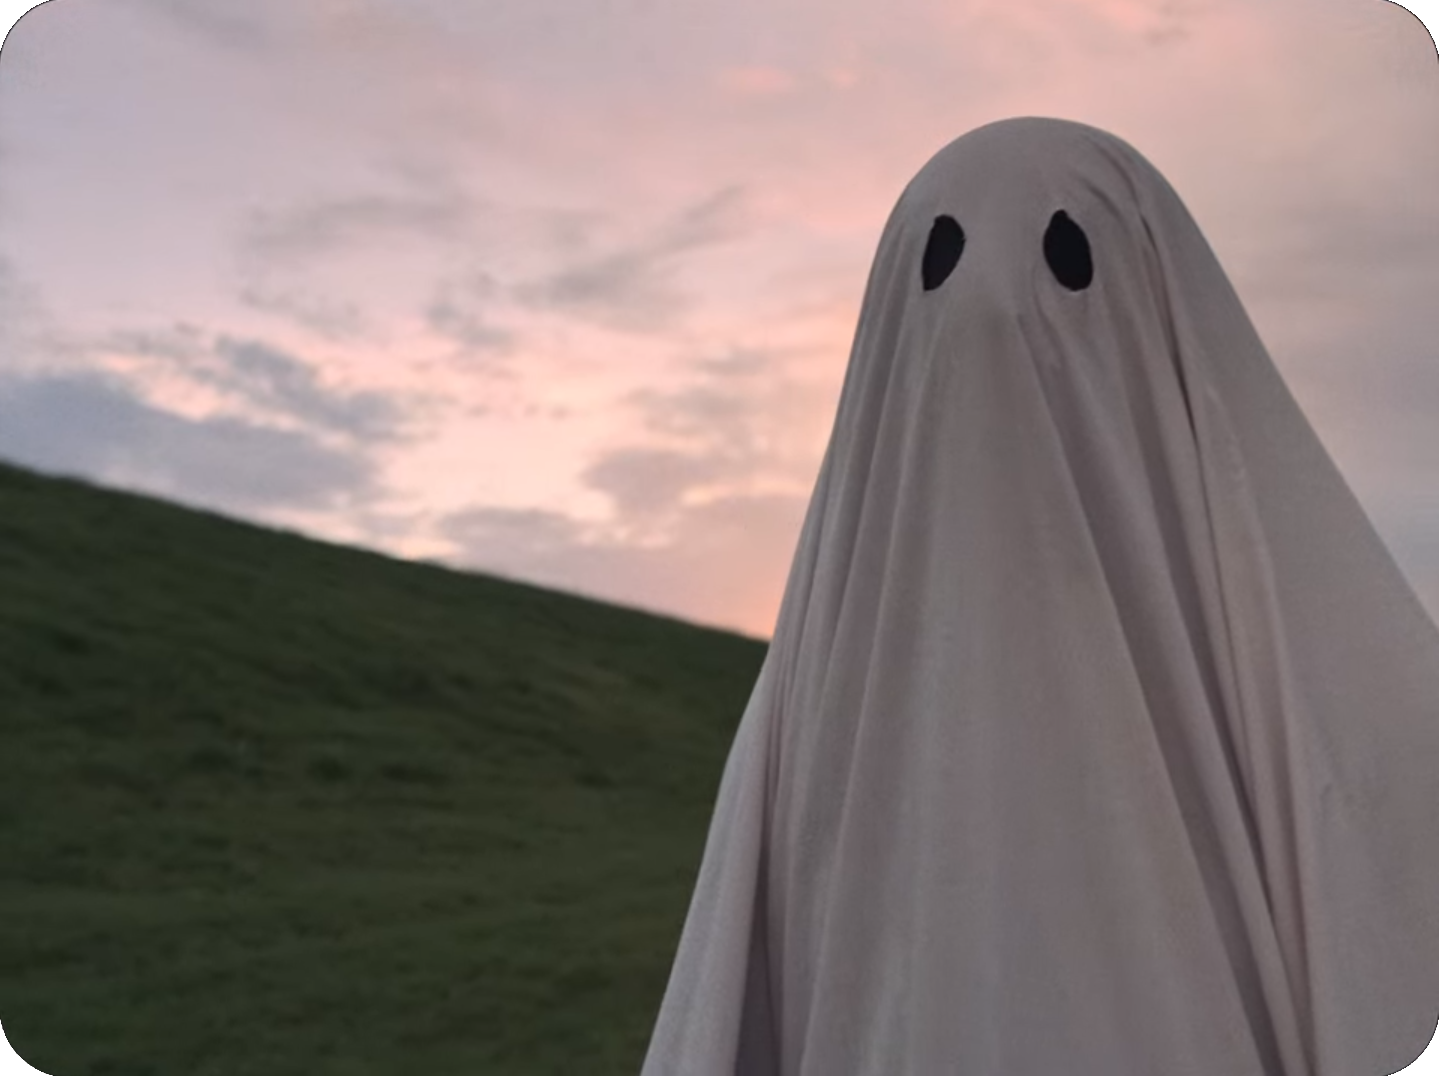 Christian Movie Podcast Cinematic Doctrine talks David Lowery A Ghost Story starring Casey Affleck Rooney Mara